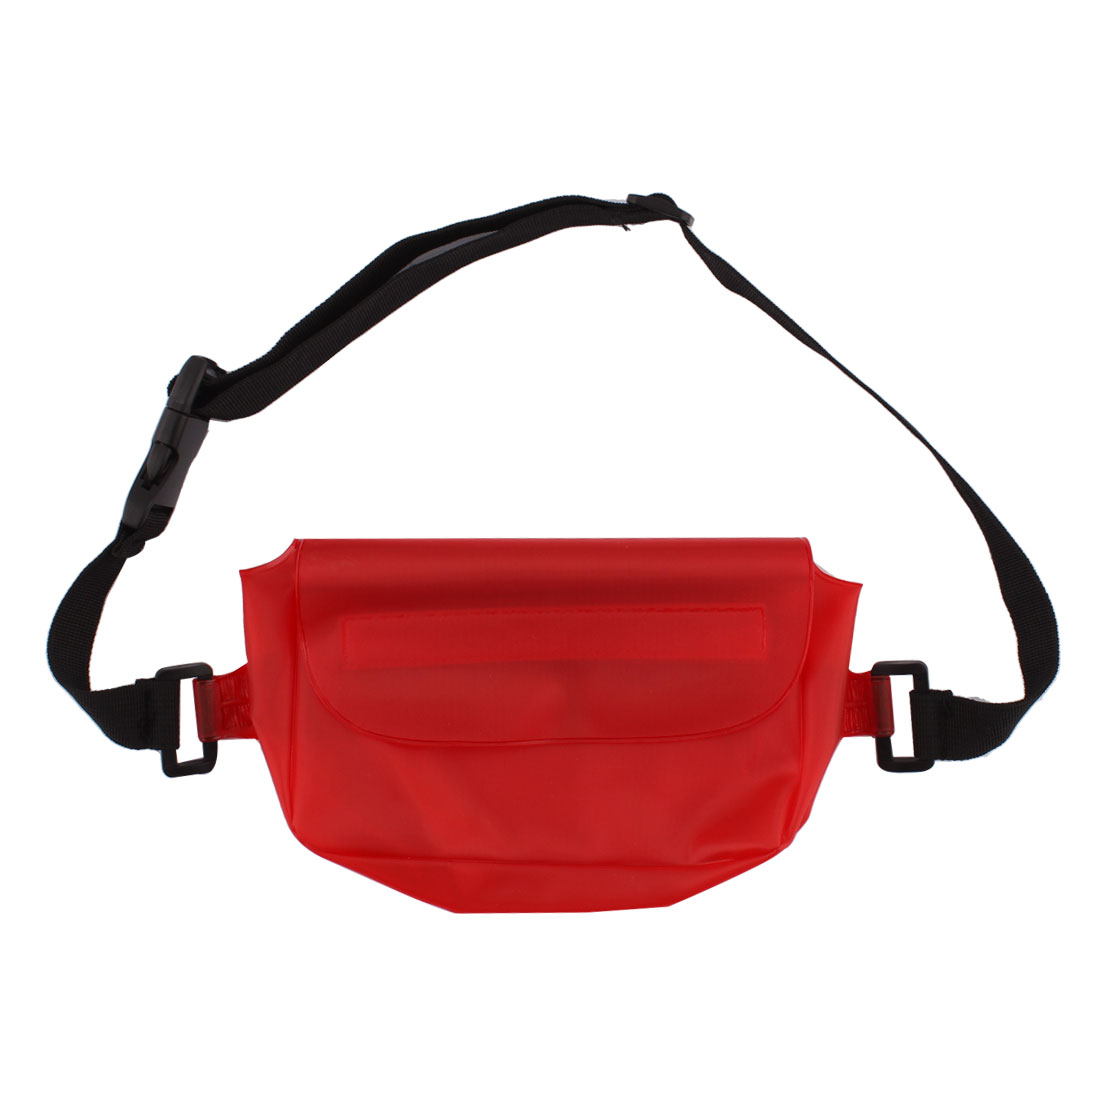 PVC Water Resistant Dustproof Waist Pack Bag Phone Holder Protector Red